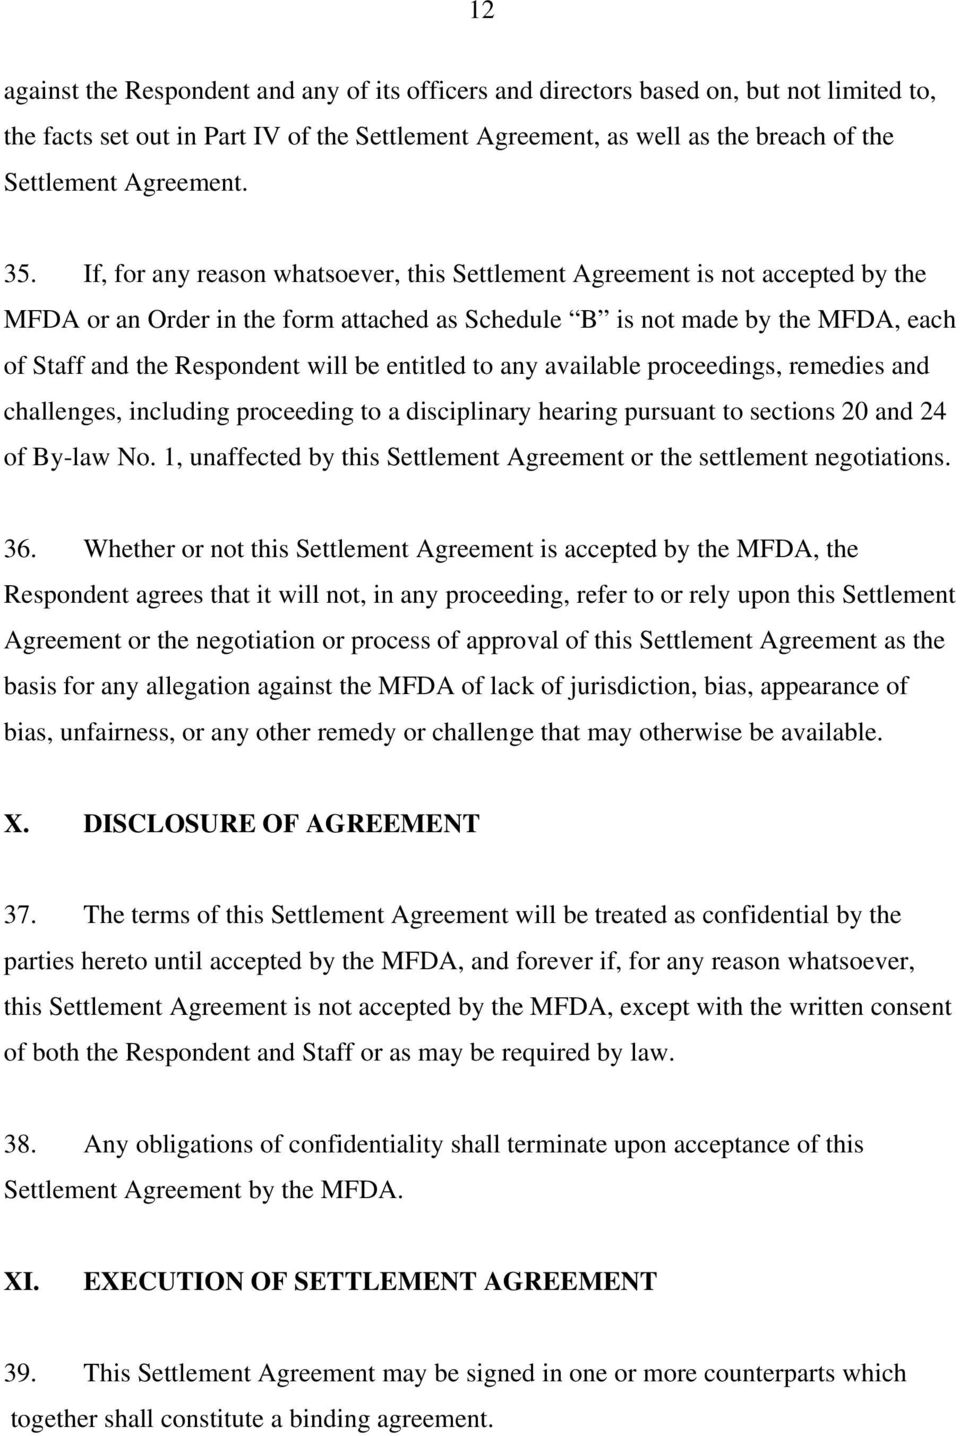 If, for any reason whatsoever, this Settlement Agreement is not accepted by the MFDA or an Order in the form attached as Schedule B is not made by the MFDA, each of Staff and the Respondent will be